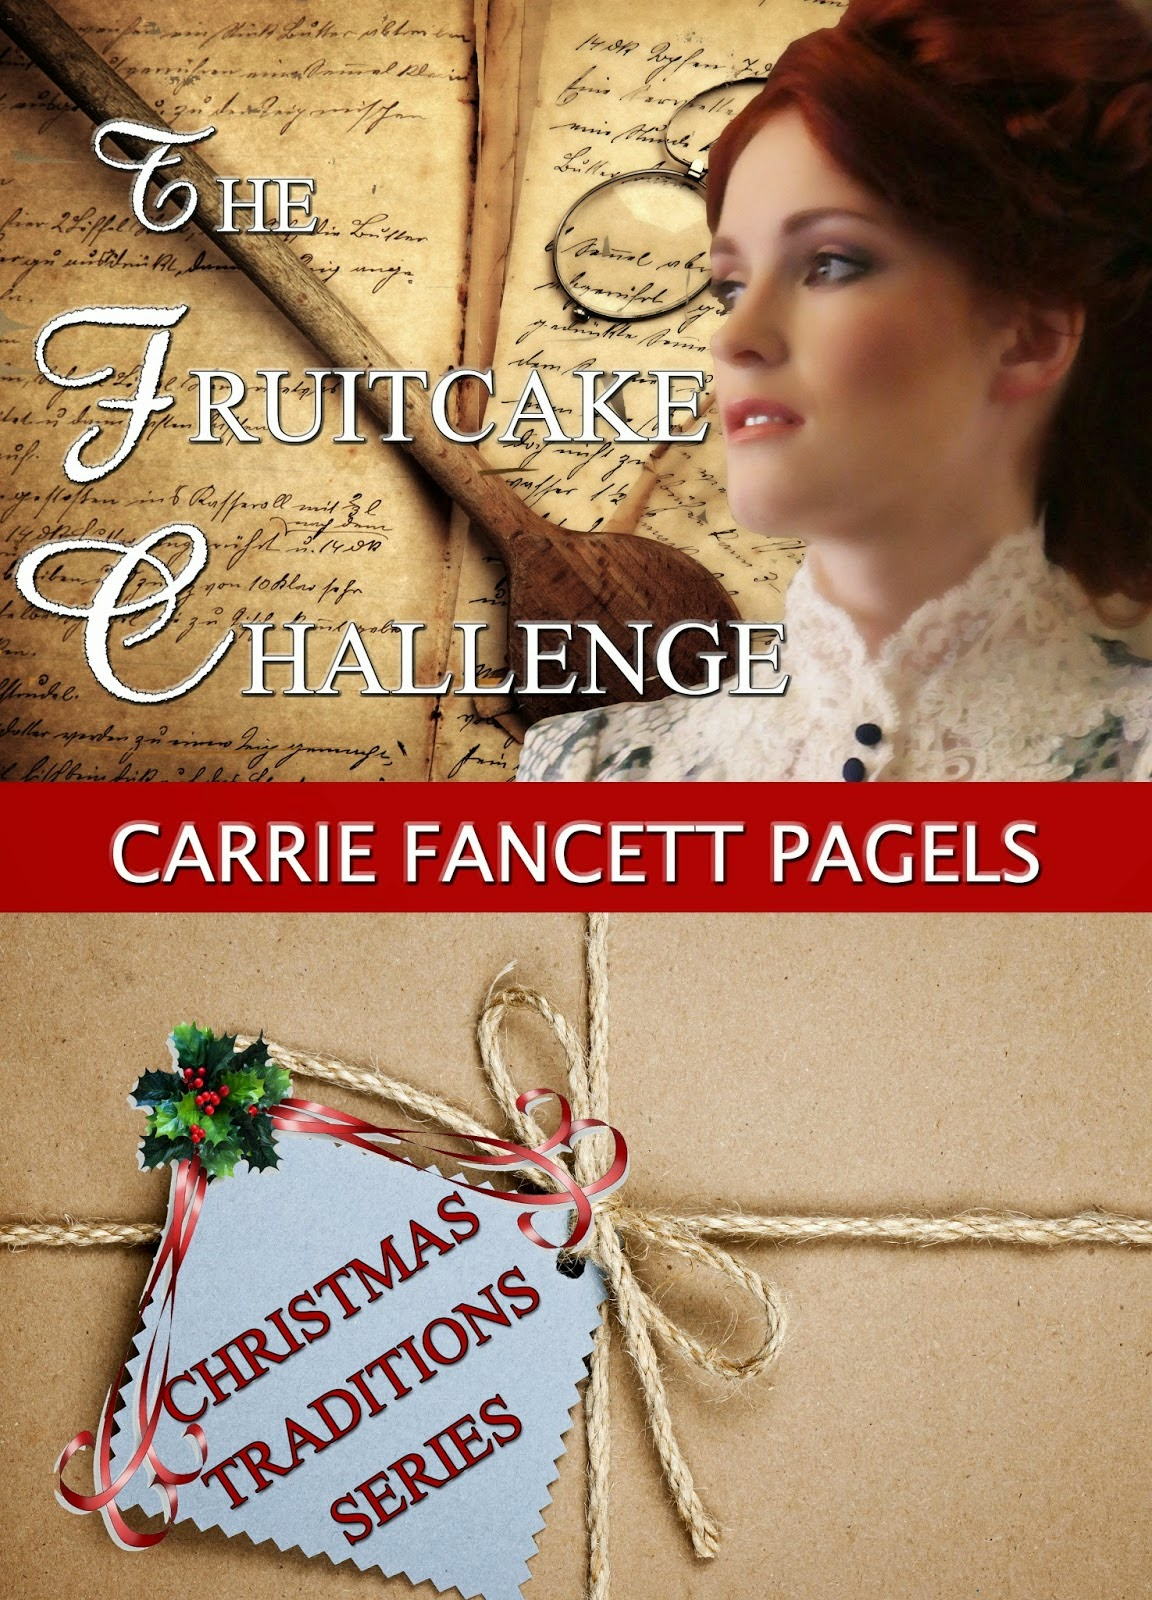 http://www.amazon.com/Fruitcake-Challenge-Christmas-Traditions-Book-ebook/dp/B00NG5II28/ref=cm_cr_pr_product_top